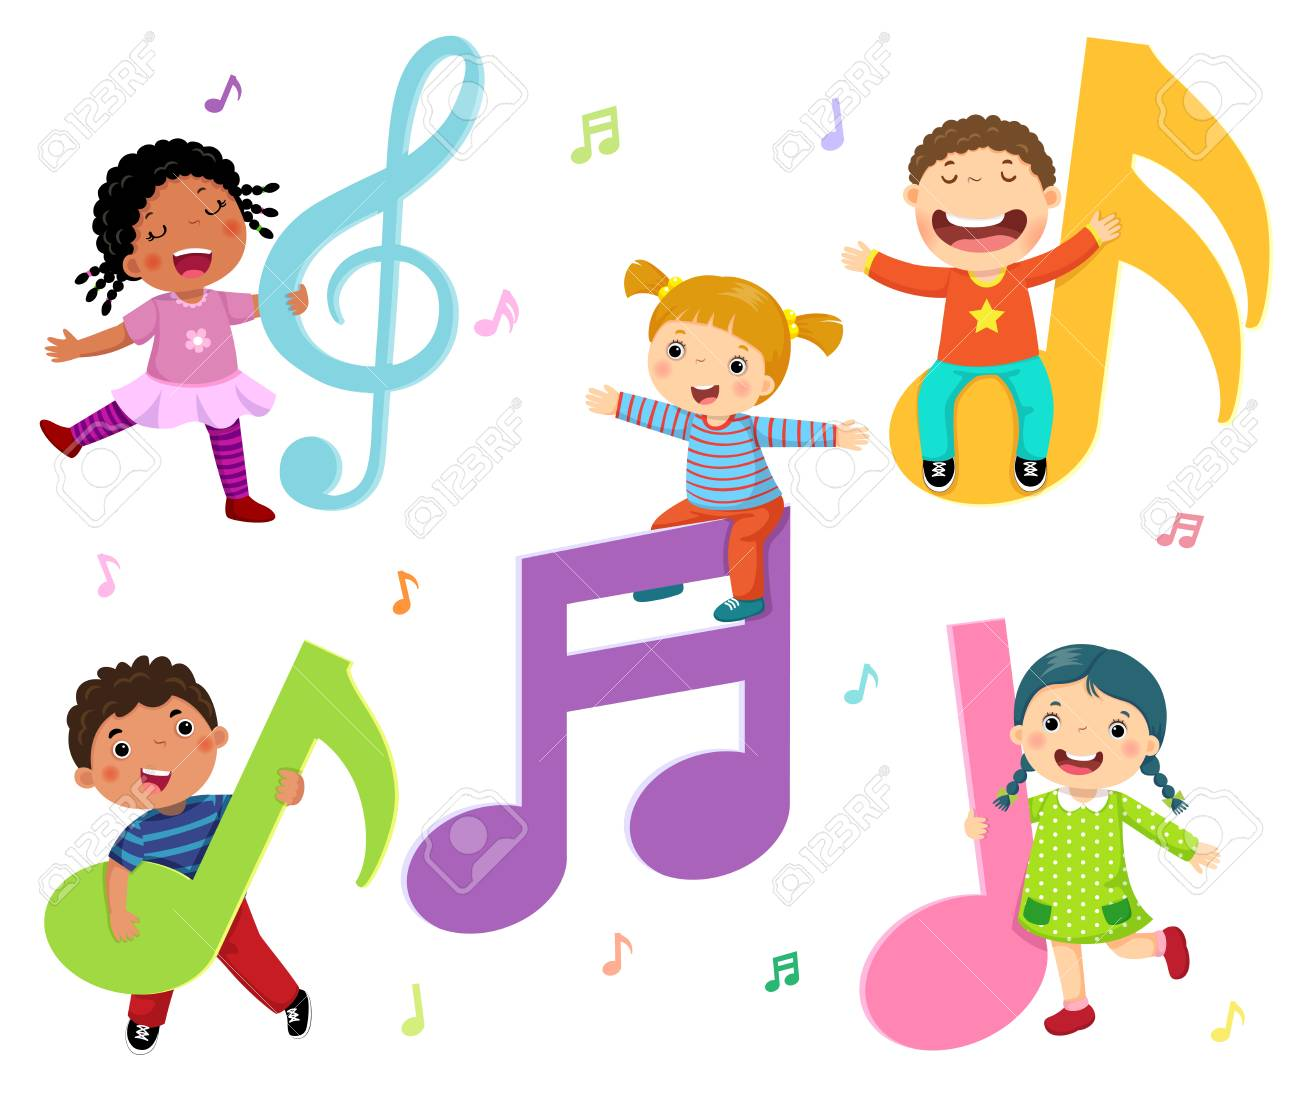 Cartoon kids with music notes - 91666562